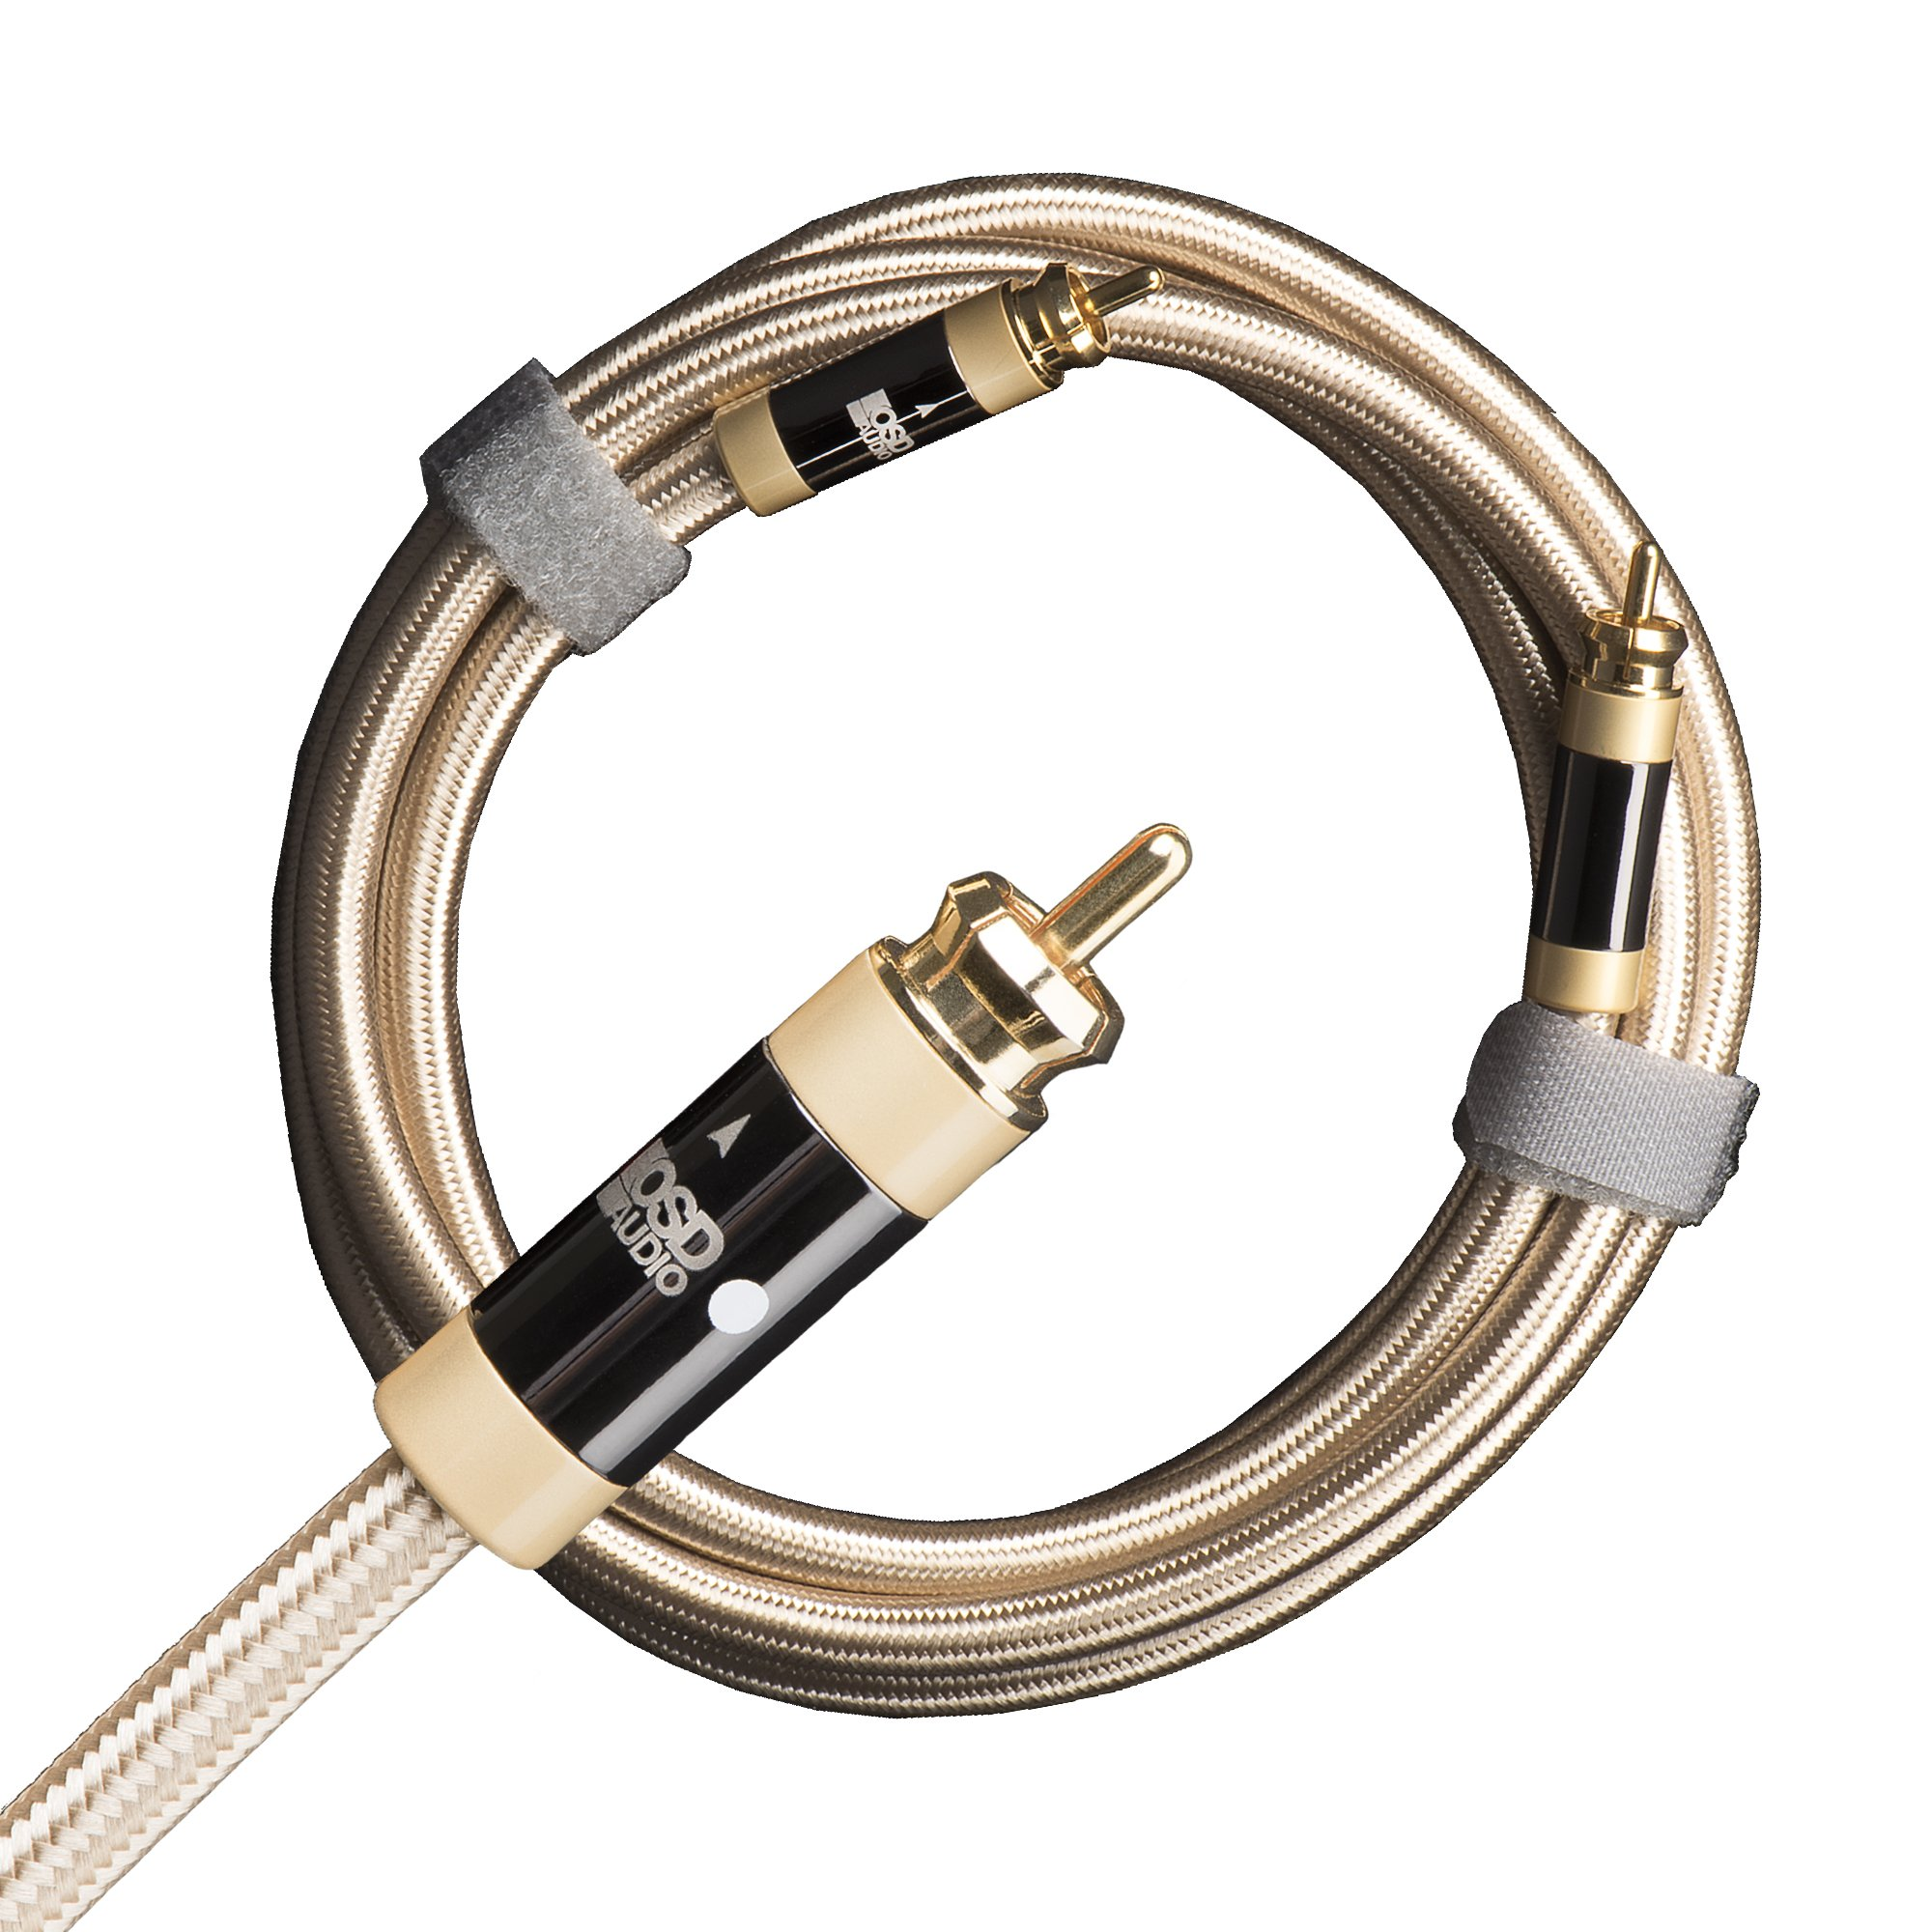 Aurum Ultra High-Performance, Unbalanced Subwoofer Cable, 100% Shield Low (Signal) Level RCA Male to RCA Male, Single Cable Up to 49' ((2M / 6.5Ft))